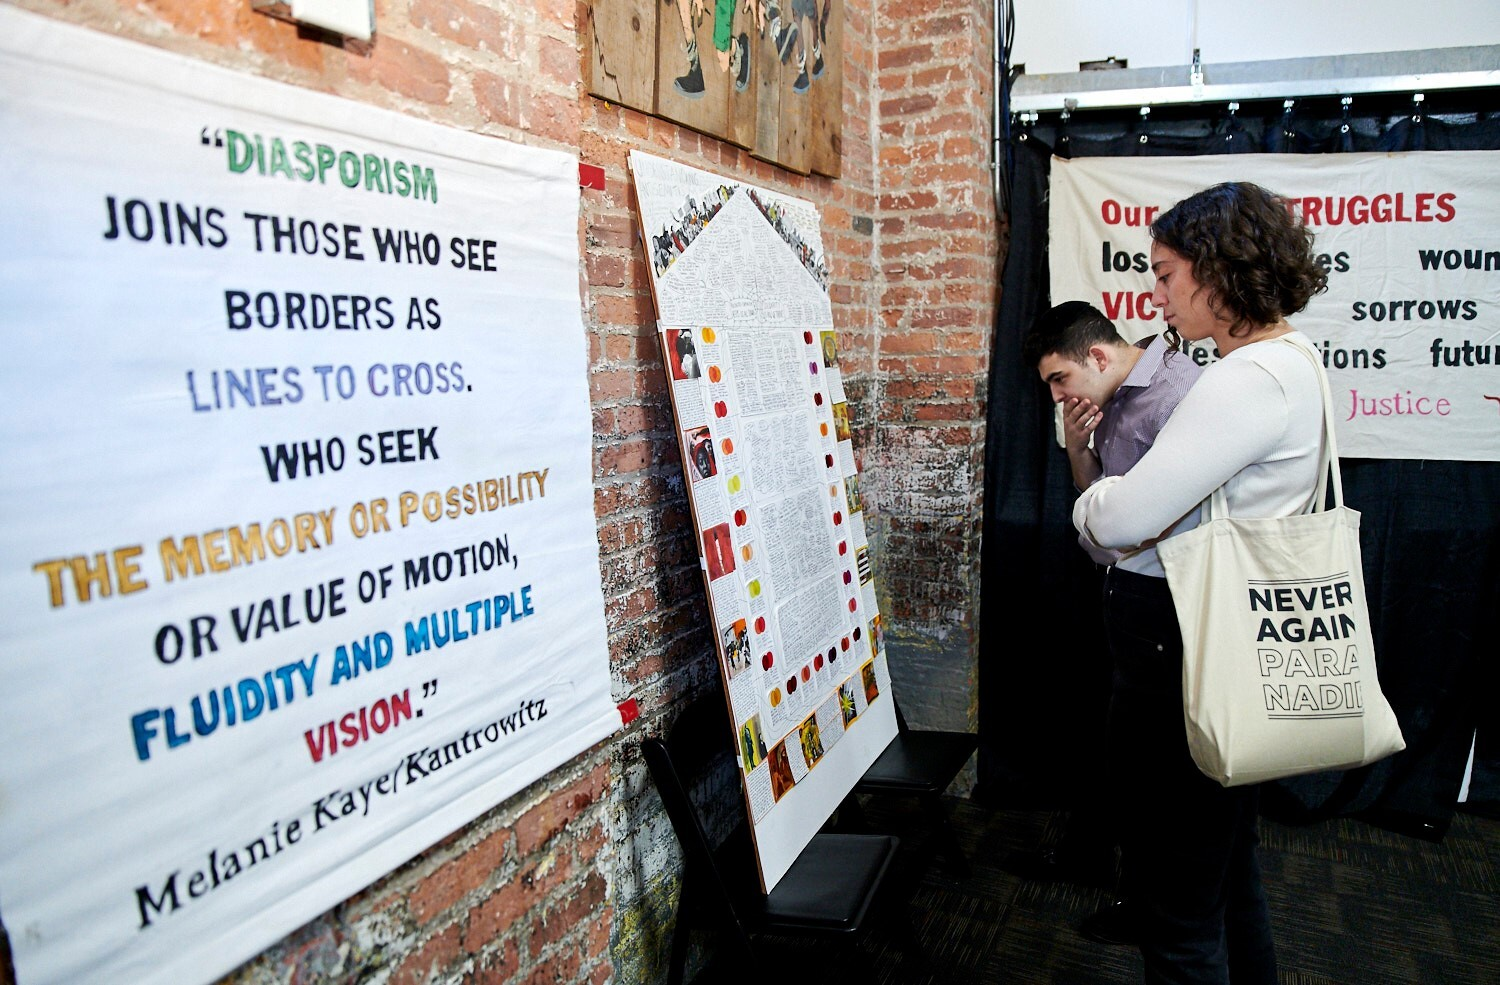 """Image of two people looking at a banner and a poster. The banner reads """"Diasporism joins those who see borders as lines to cross. Who seek the memory or possibility or value of motion, fluidity and multiple vision. - Melanie Kaye/Kantrowitz"""""""